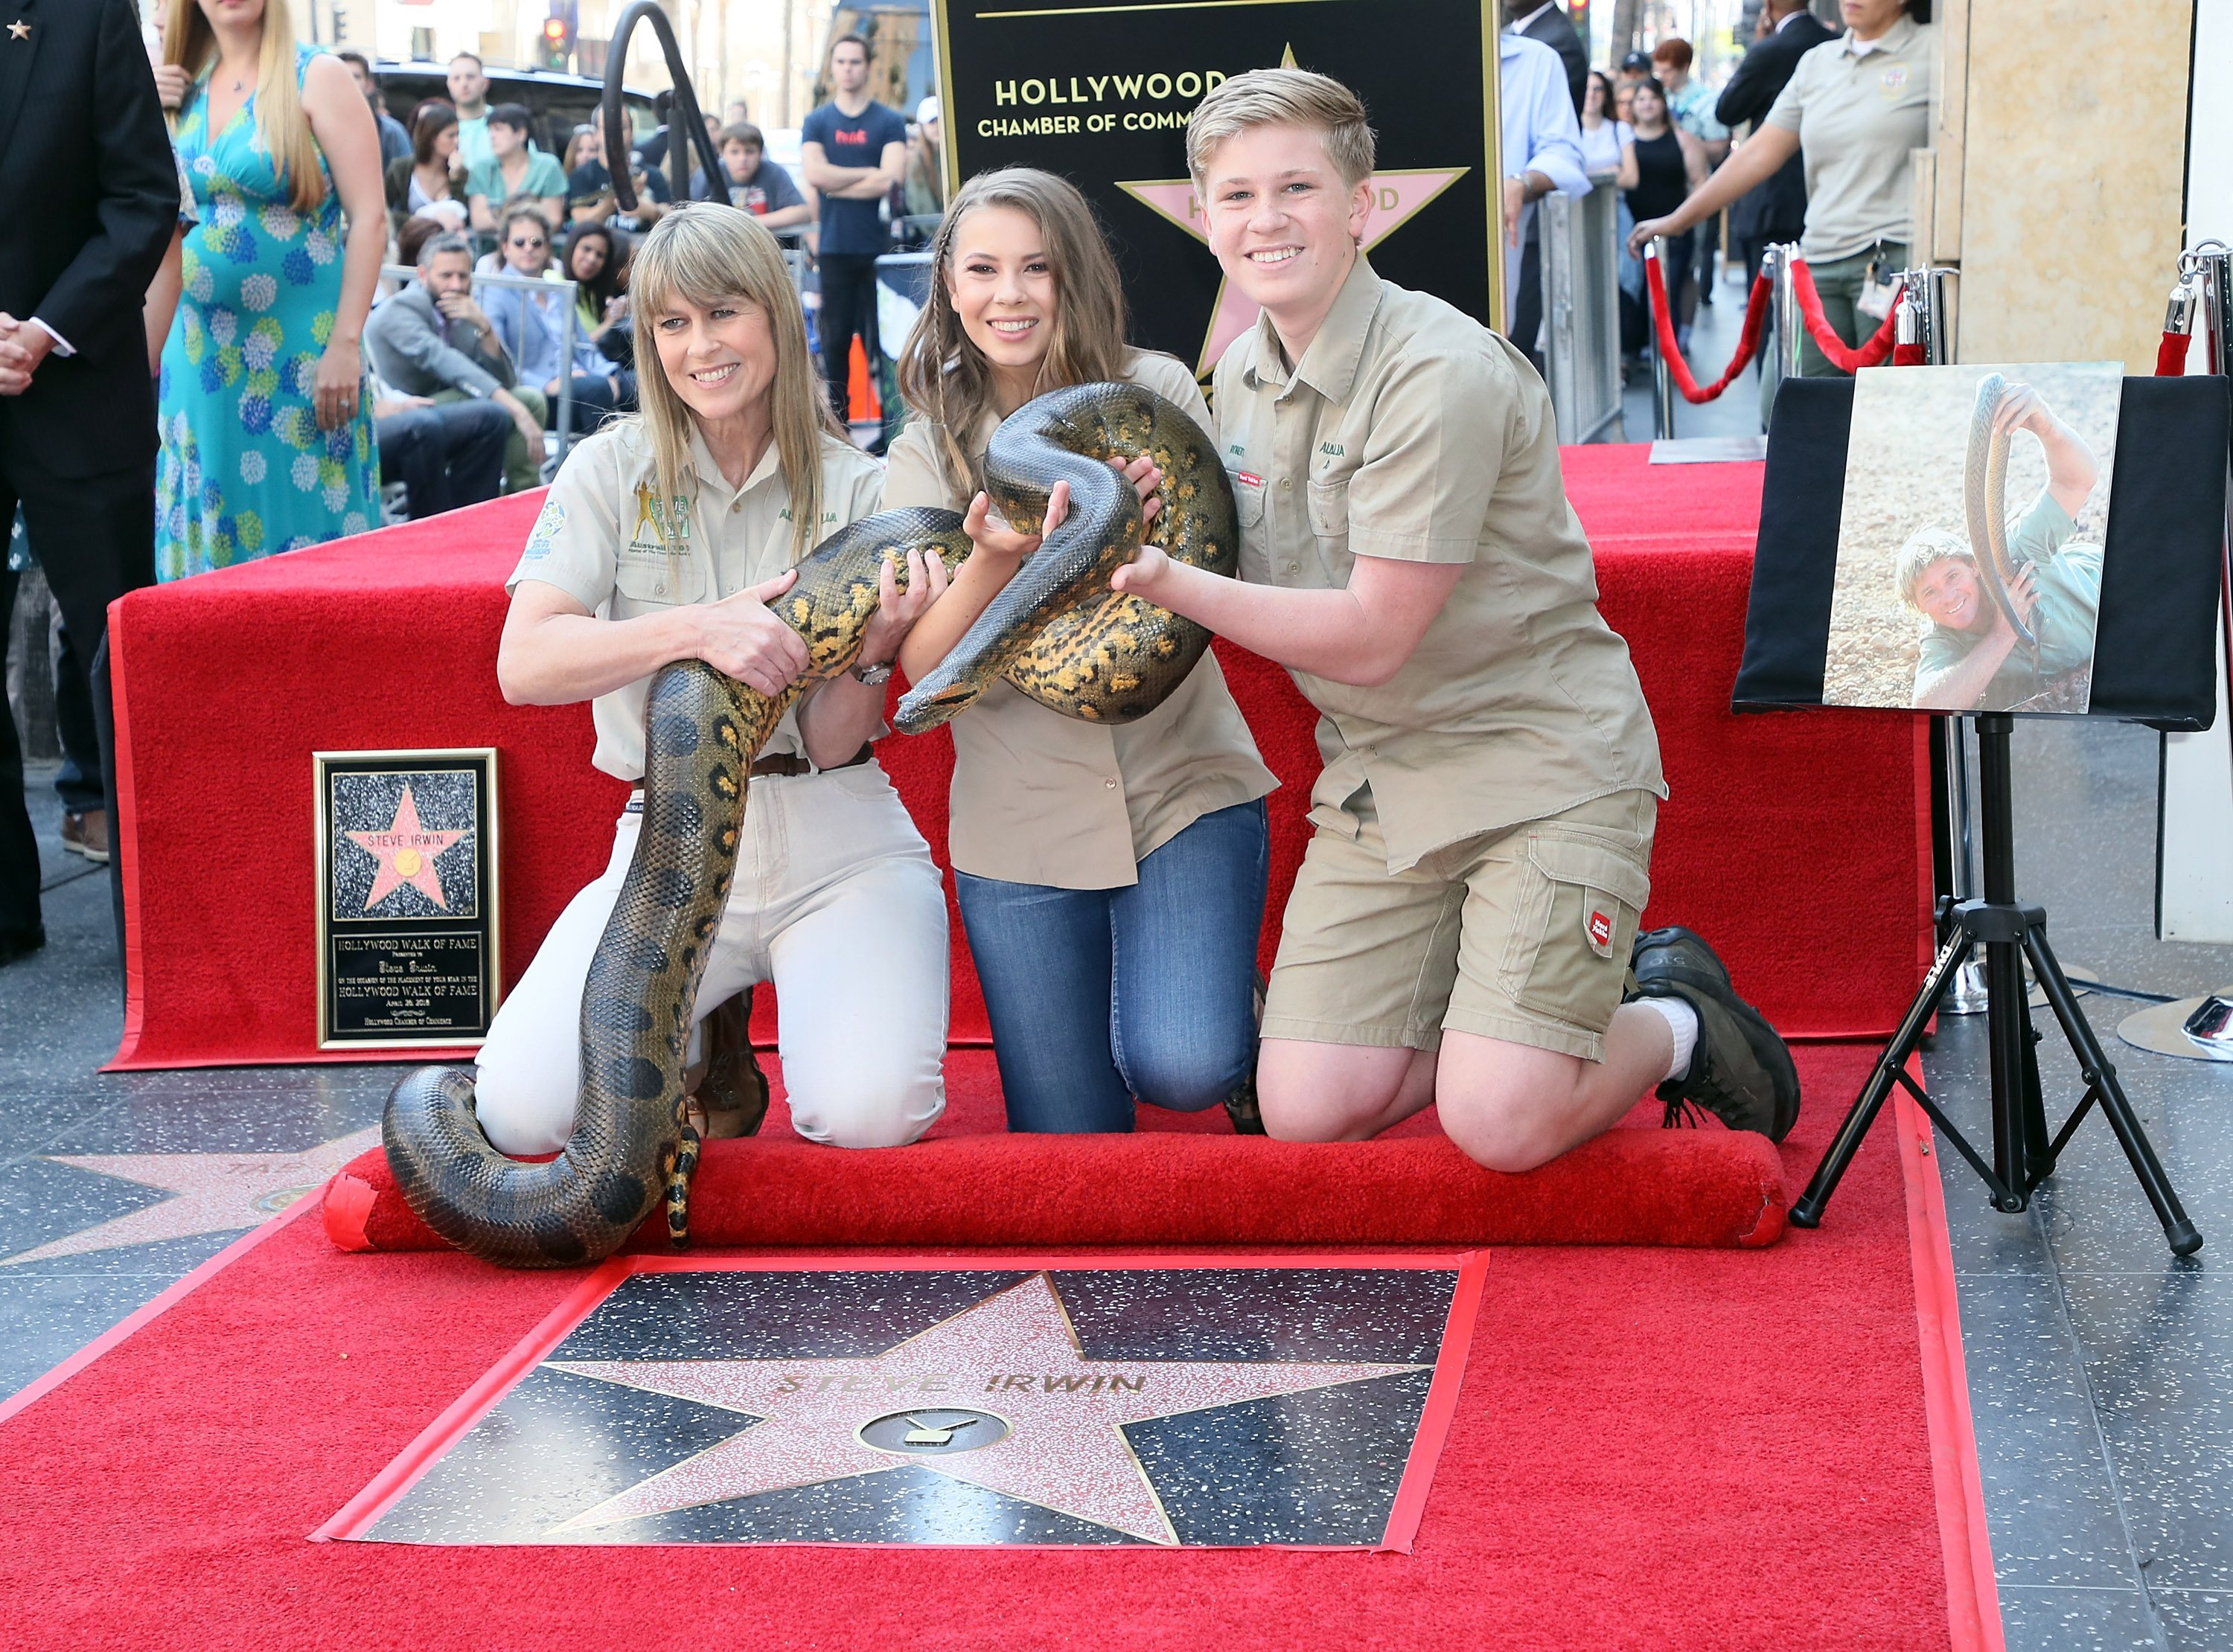 Terri Irwin, Bindi Irwin and Robert Irwin celebrating Steve Irwin being honored posthumously with a Star on the Hollywood Walk of Fame in Hollywood, California   Photo: David Livingston/Getty Images